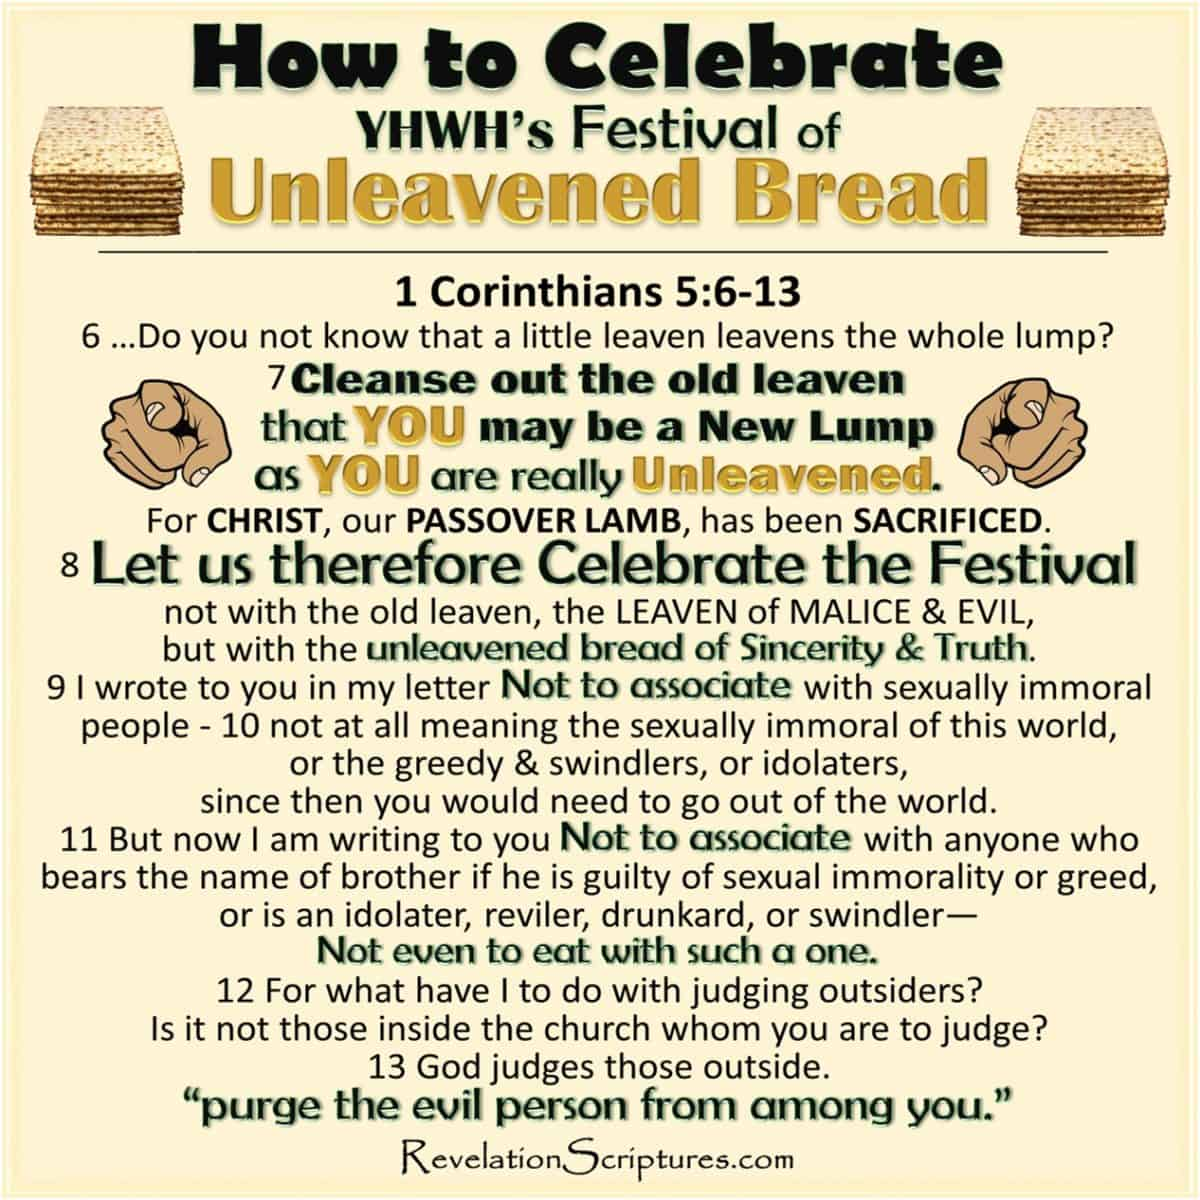 Feast of Unleavened Bread,Shavuot,Unleavened Bread in Revelation,Shavuot in Revelation,Book of Revelation,Festival of Weeks,Unleavened Bread,Bread of Affliction,144000,Great Multitude,New Lump,malice,wickedness,sincerity,truth,Leaven,sin,hypocrisy,hypocrite,fulfillment in Revelation